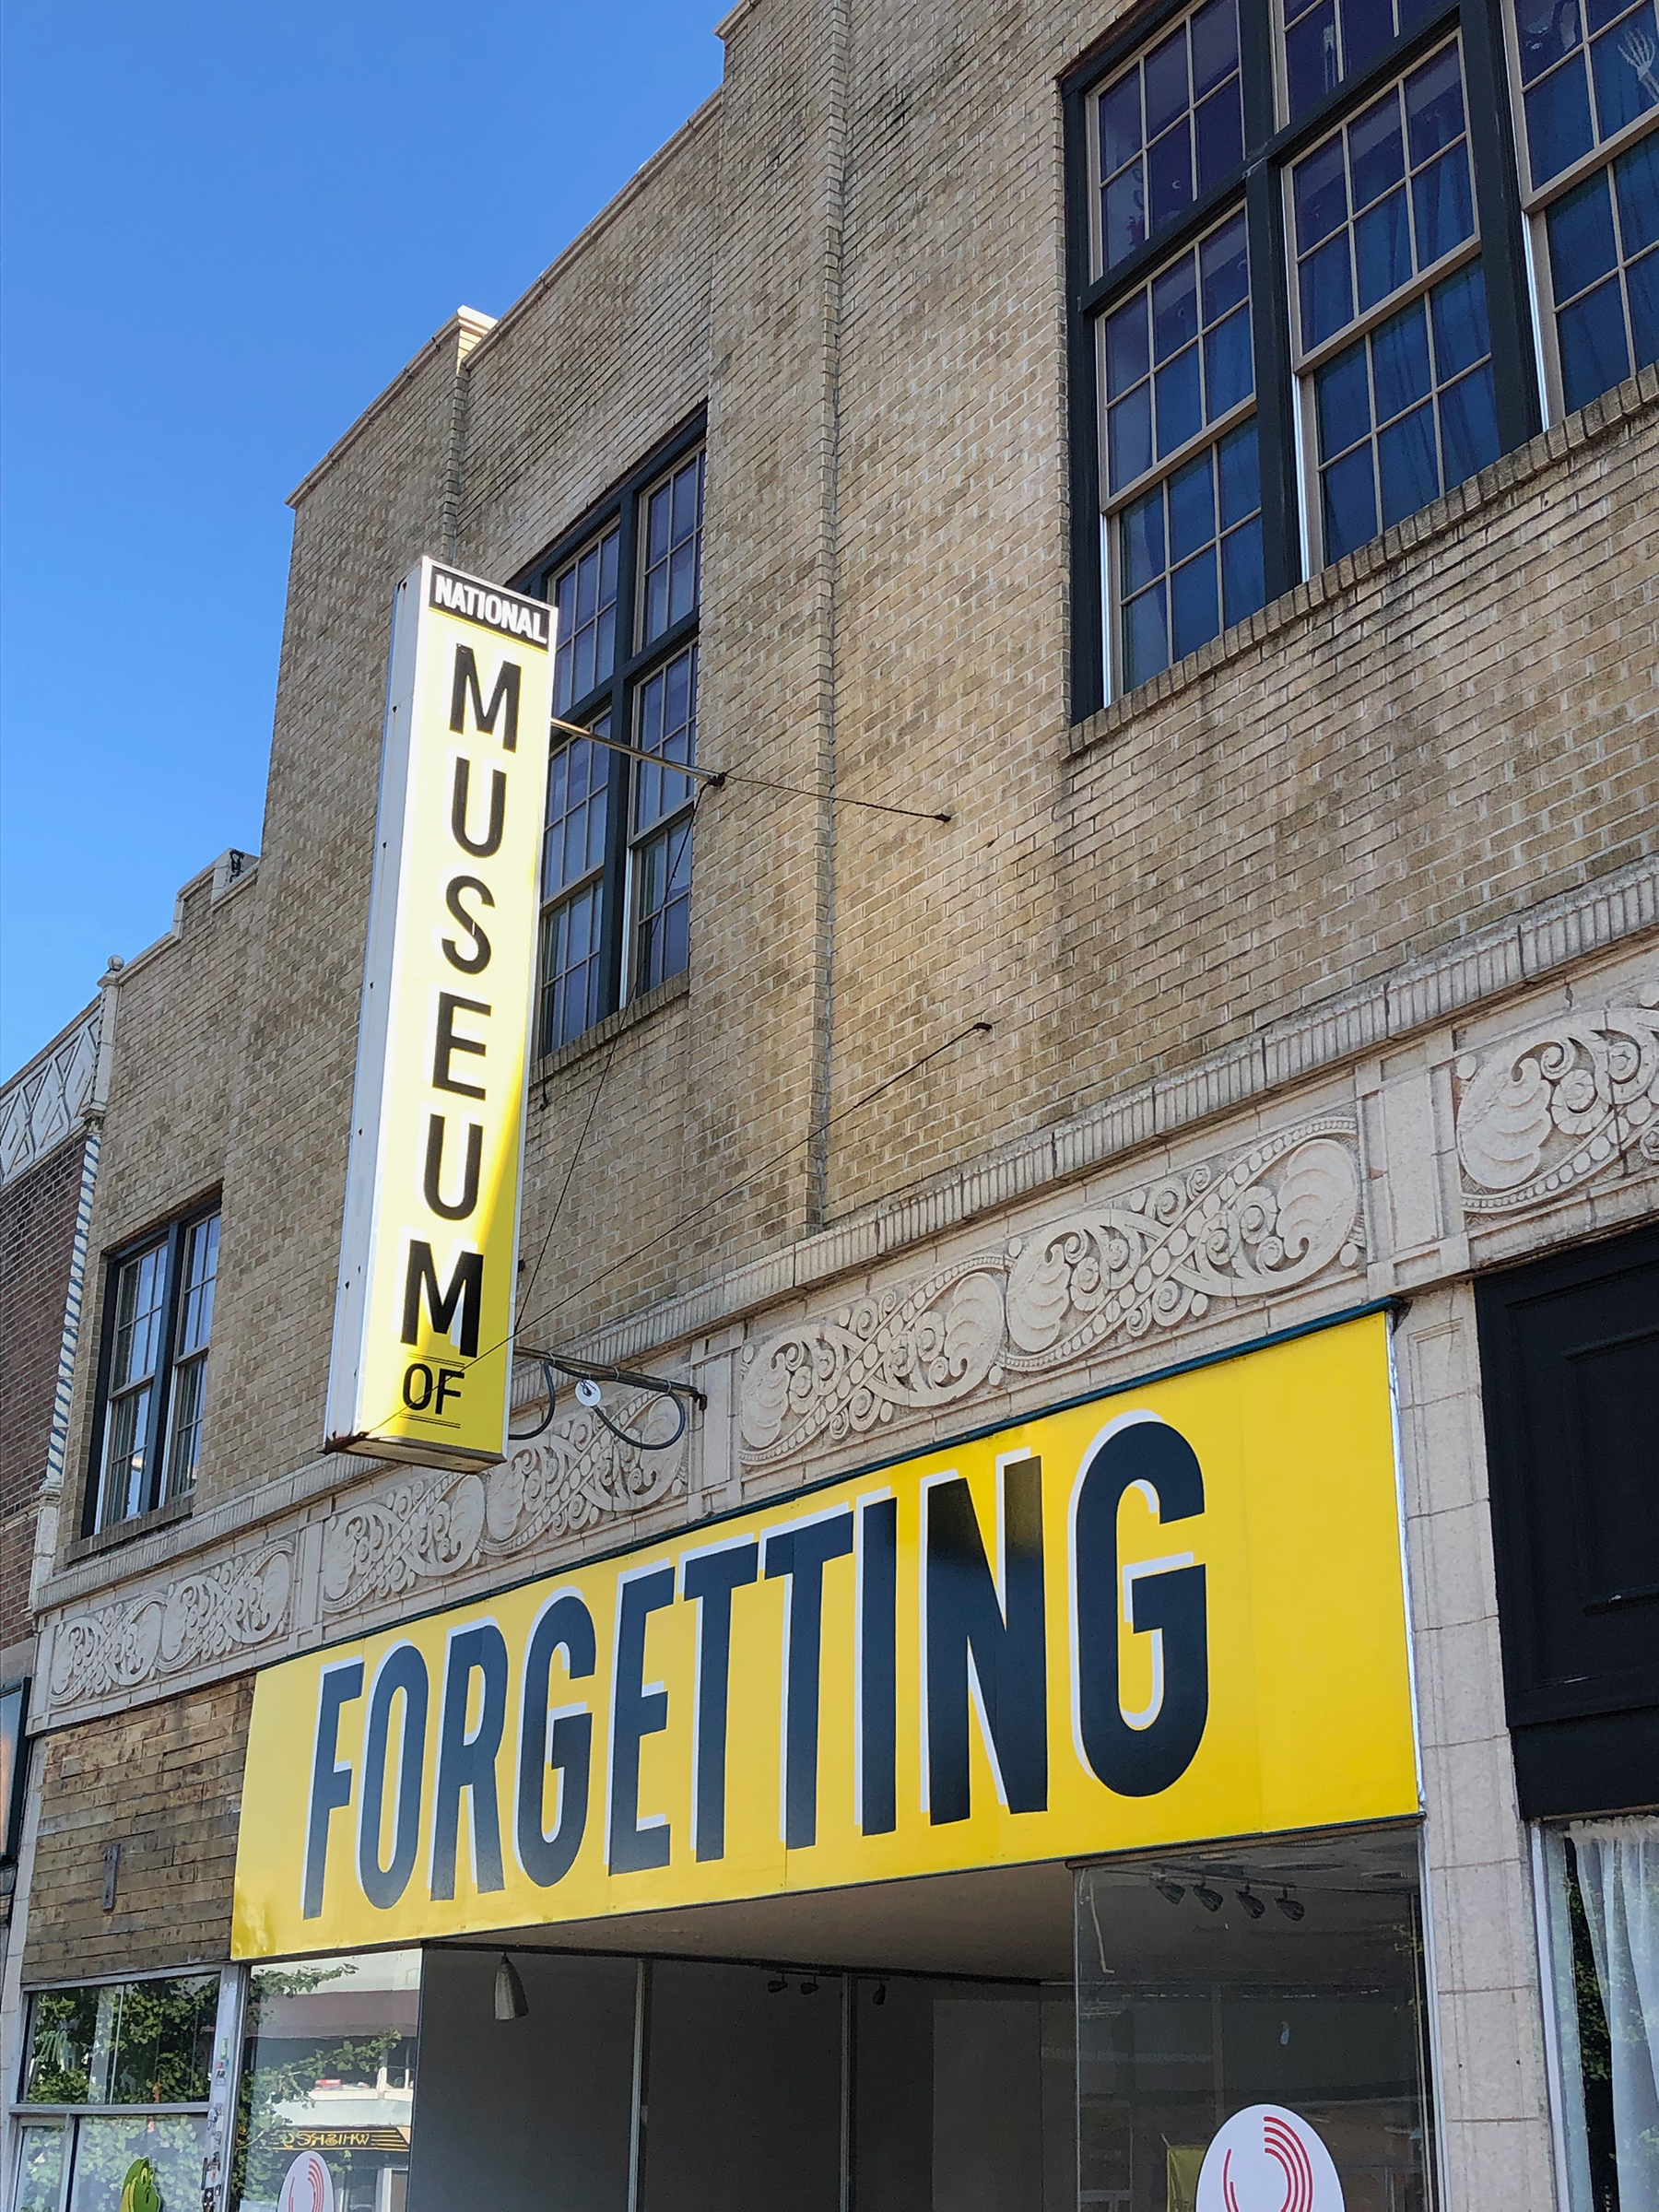 Joseph del Pesco and Jon Rub. Monuments, Ruins, and Forgetting. Photo taken in July, 2019 while visiting  Counterpublic .